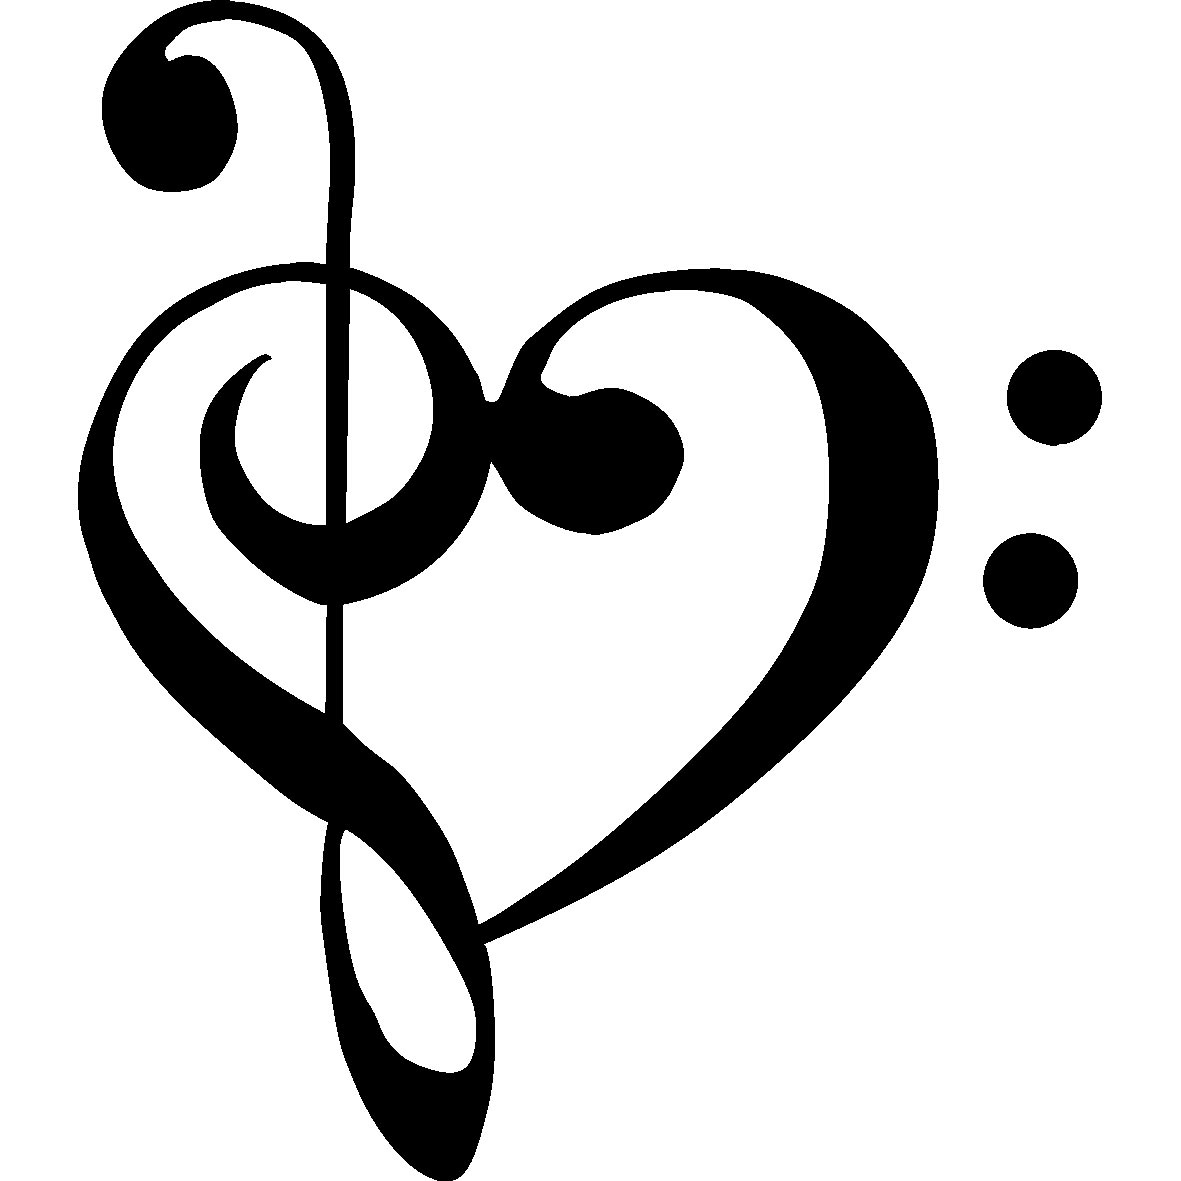 Music Note Symbol Tattoo Clipart Panda Free Clipart Images